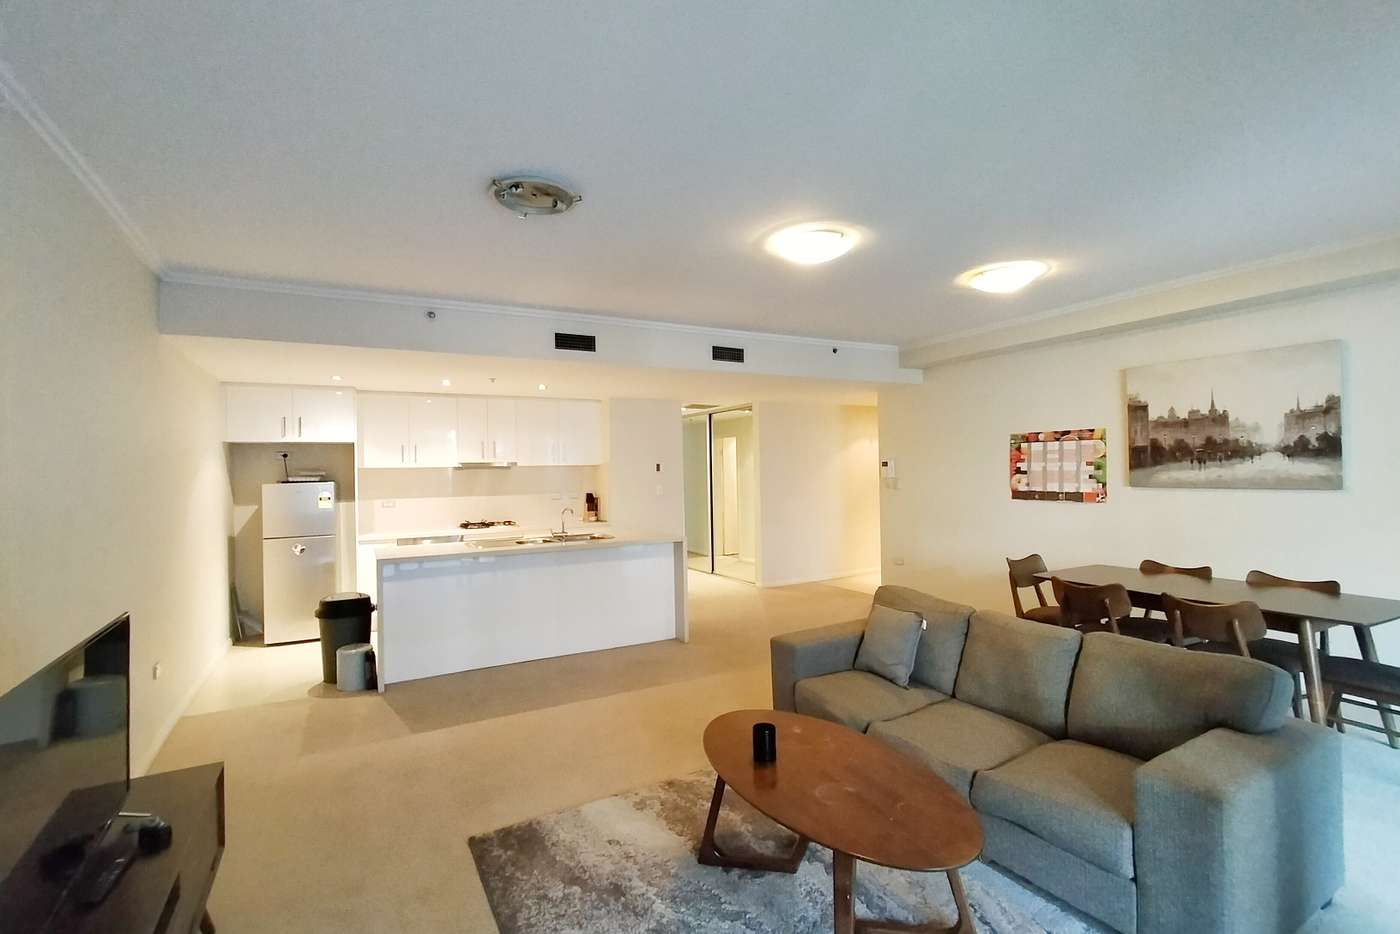 Main view of Homely apartment listing, 20/7 Bourke Street, Mascot NSW 2020